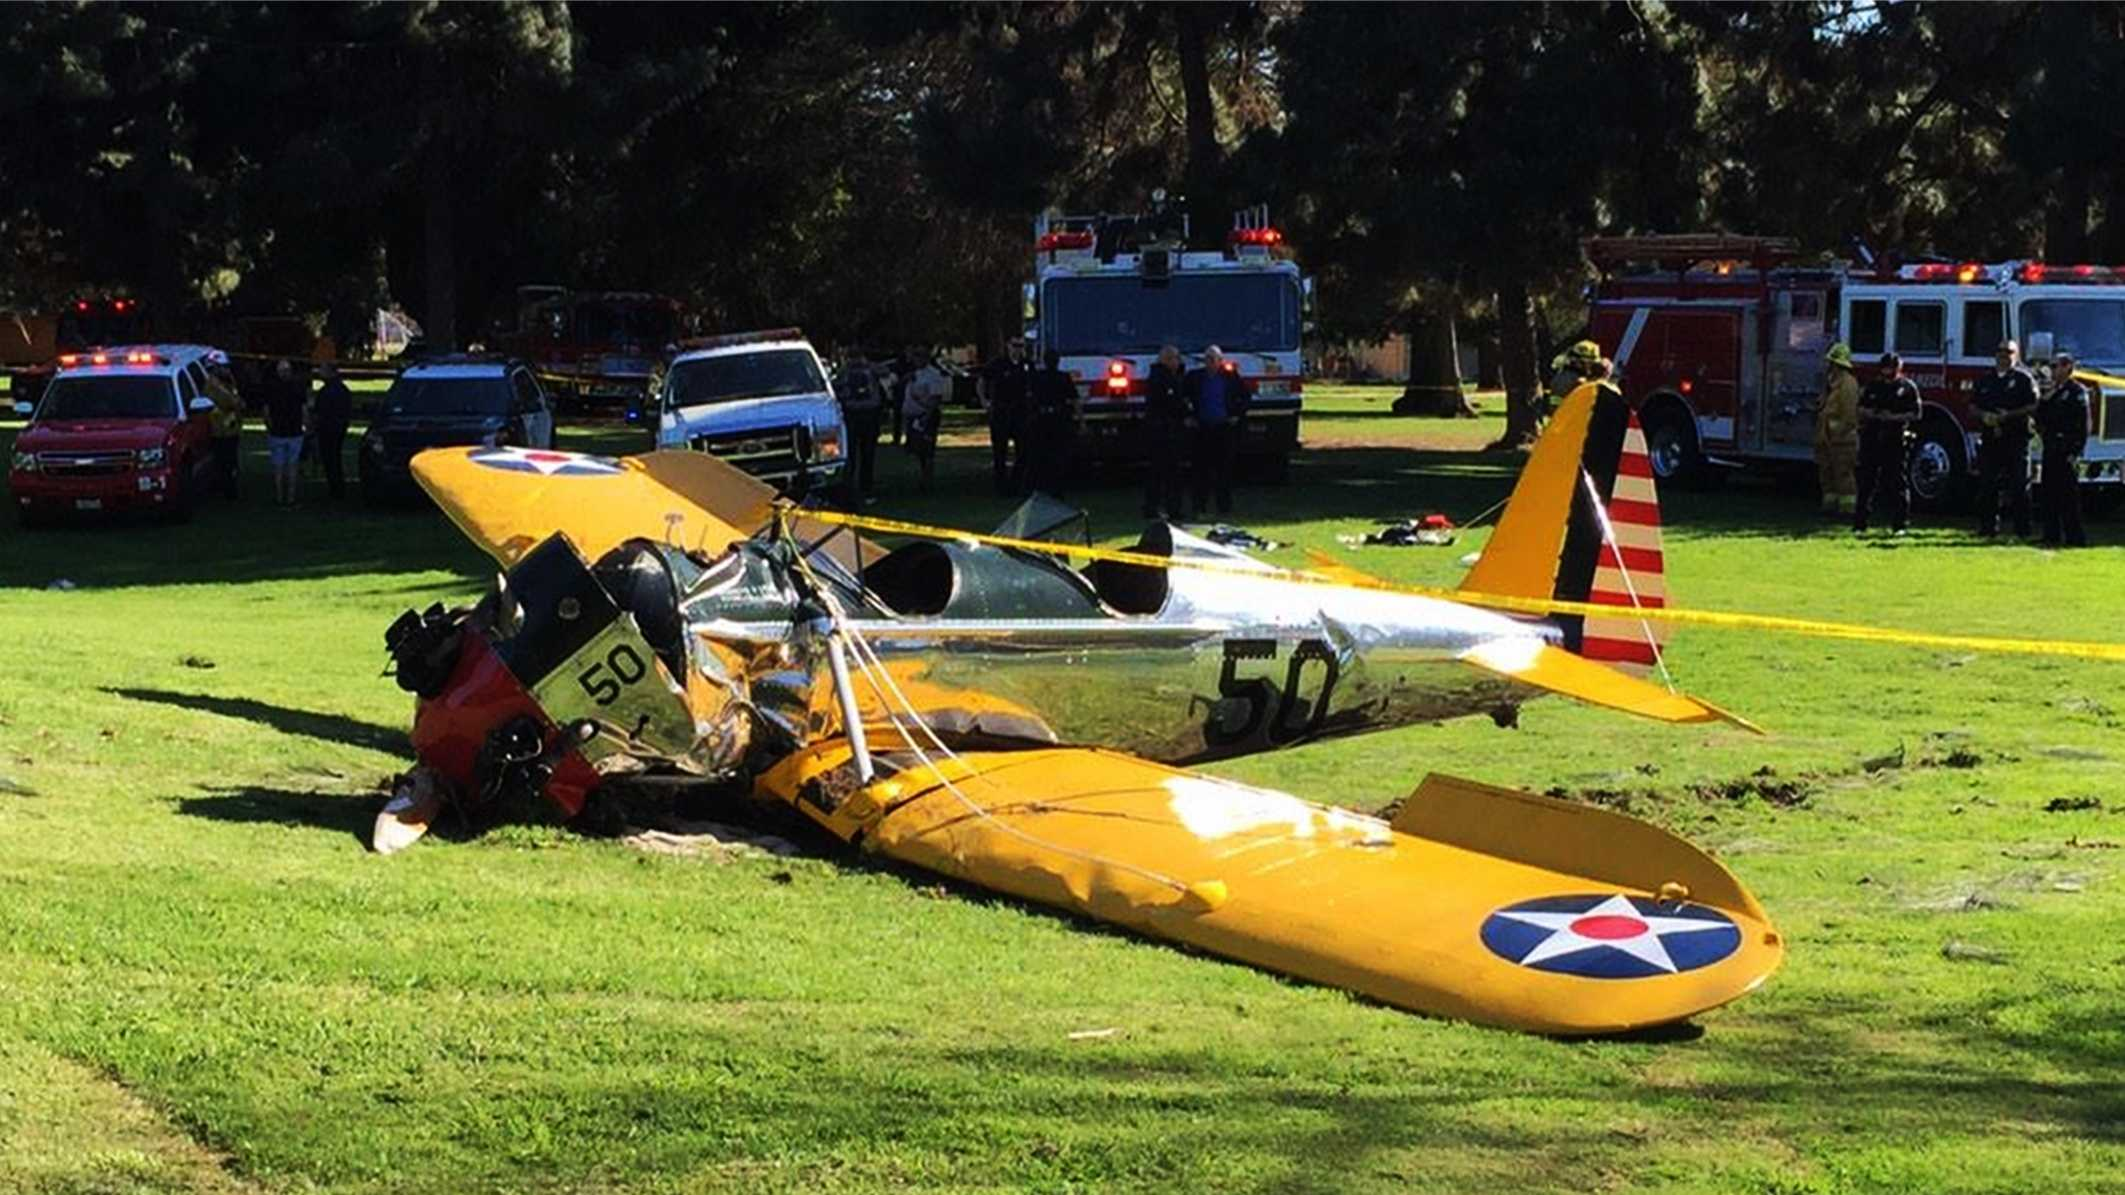 Harrison Ford crashed this plane on March 5, 2015.